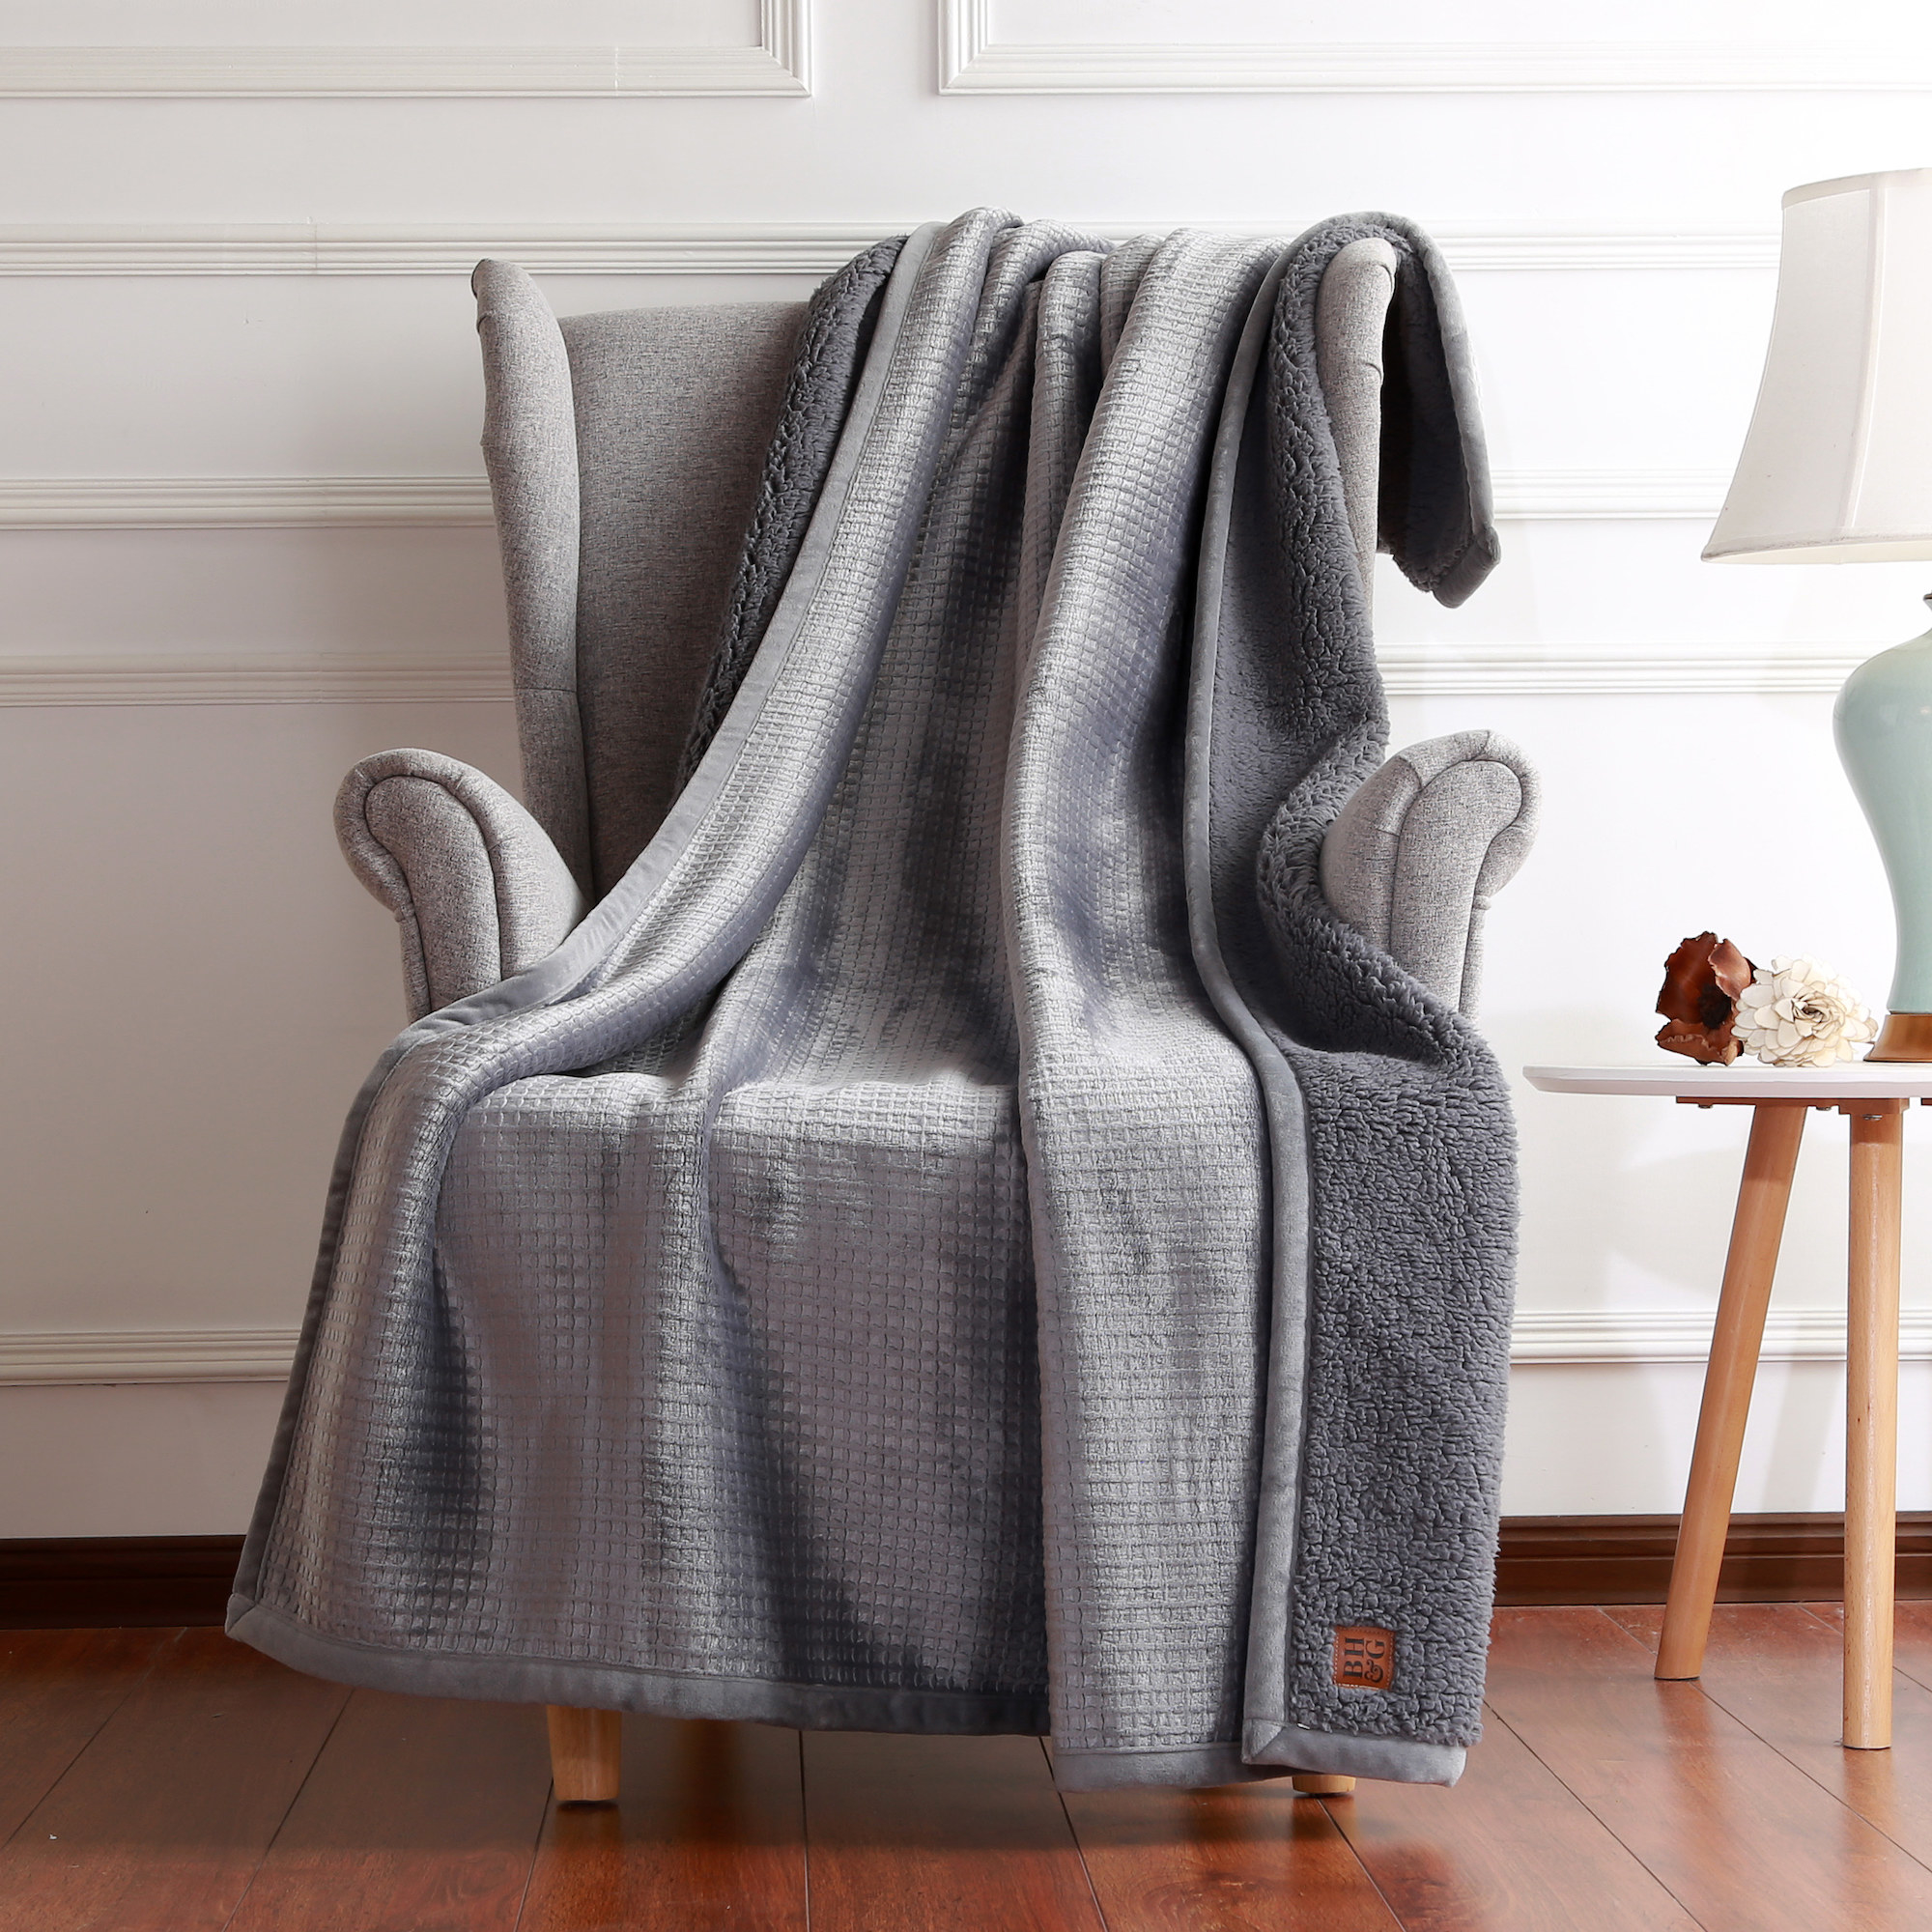 the throw in gray draped over a chair